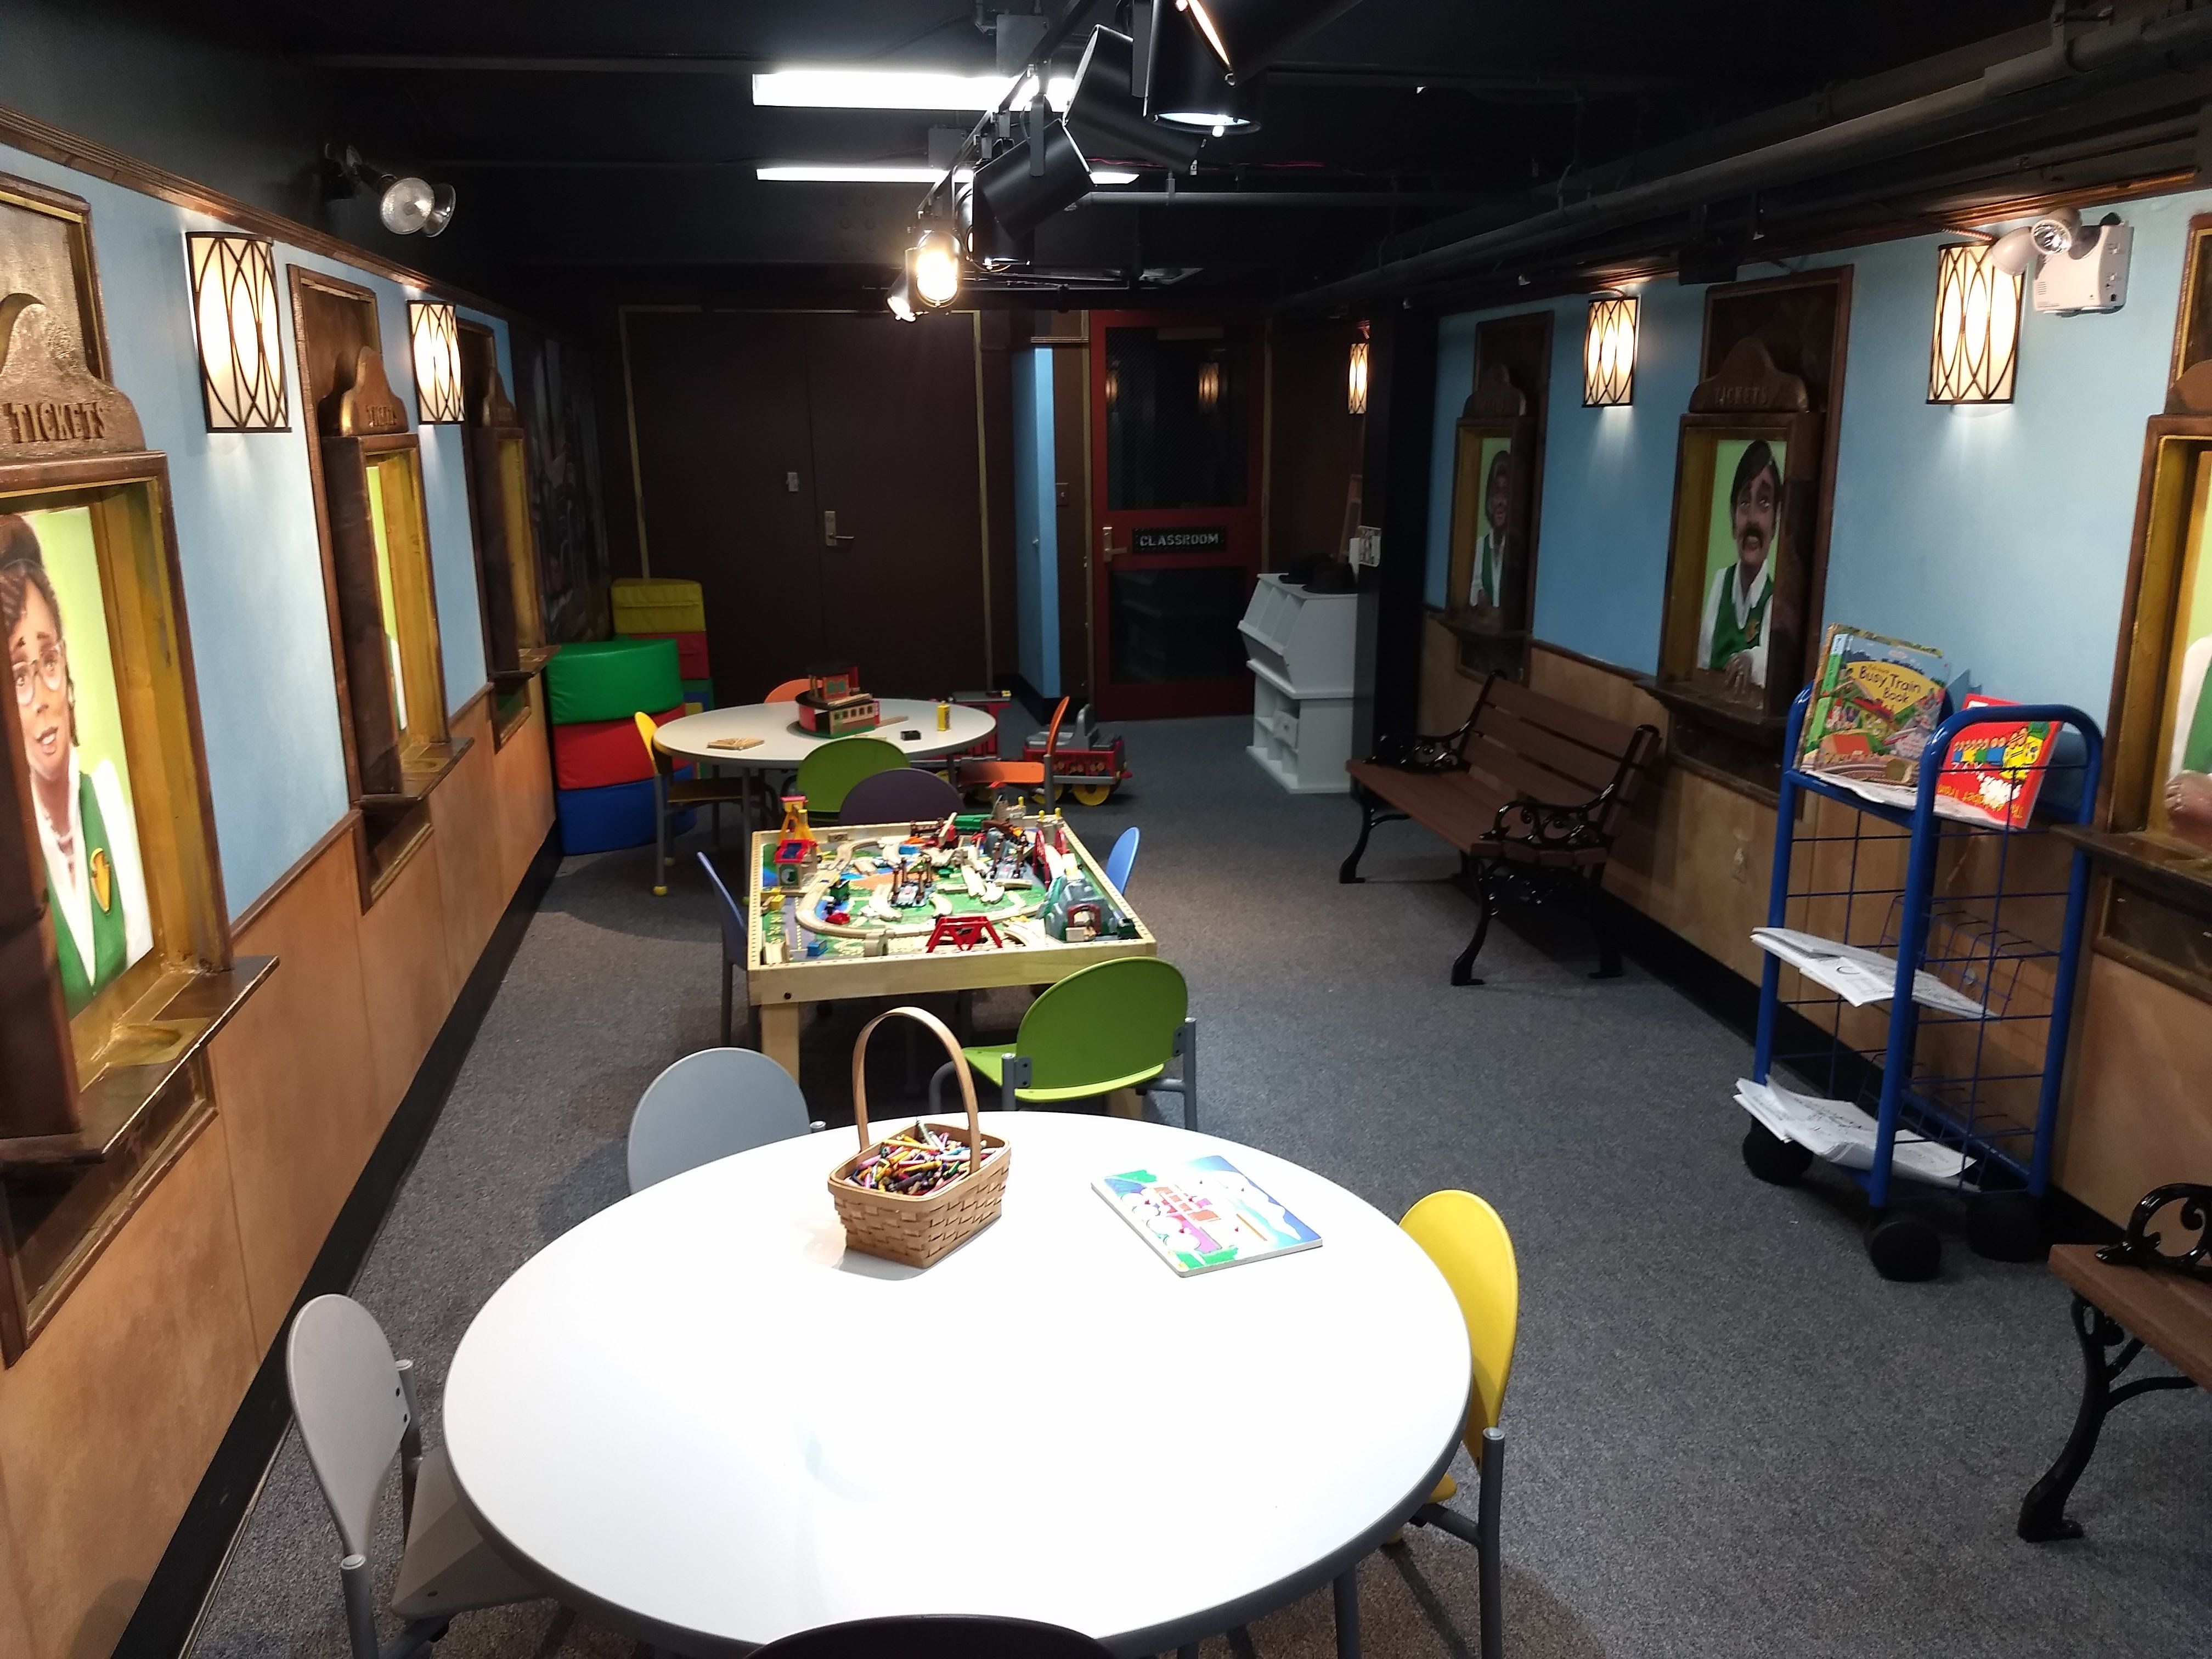 Room at Steam Town set aside for kid activities.